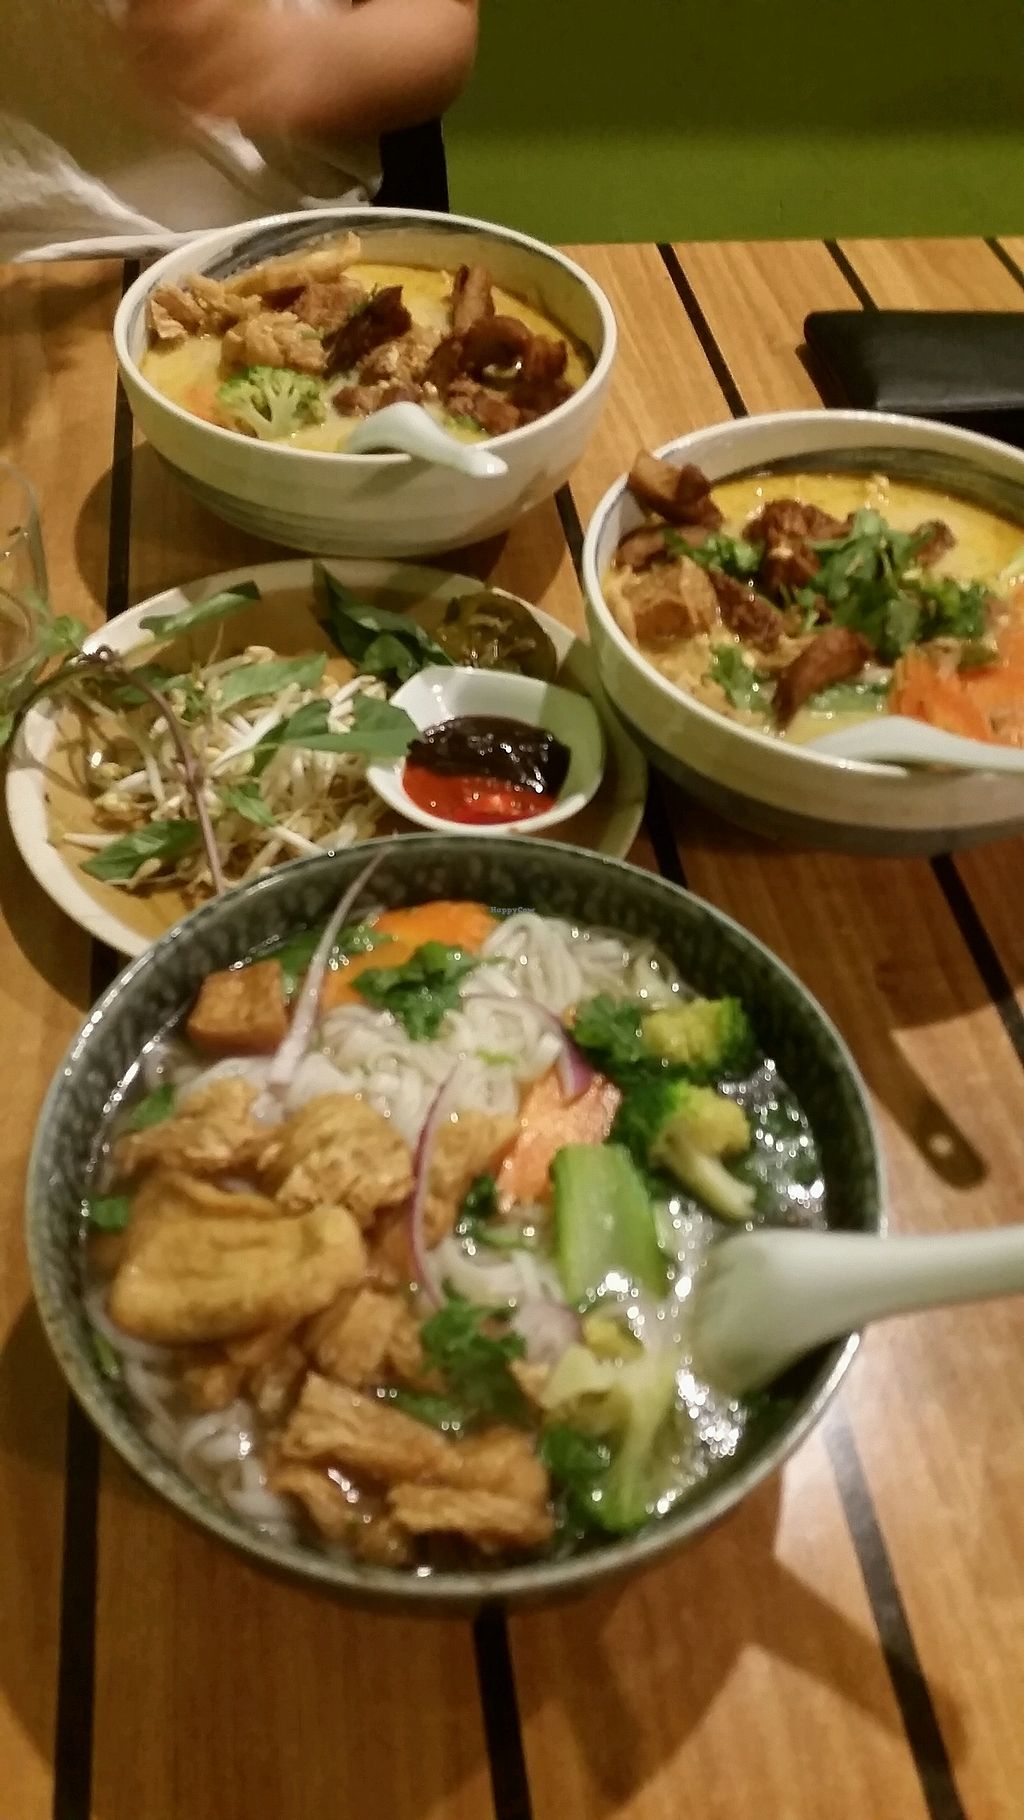 """Photo of Golden Lotus Vegan  by <a href=""""/members/profile/JulianaMurace"""">JulianaMurace</a> <br/>tofu pho and laksa (spicy!) <br/> August 26, 2017  - <a href='/contact/abuse/image/60395/297332'>Report</a>"""